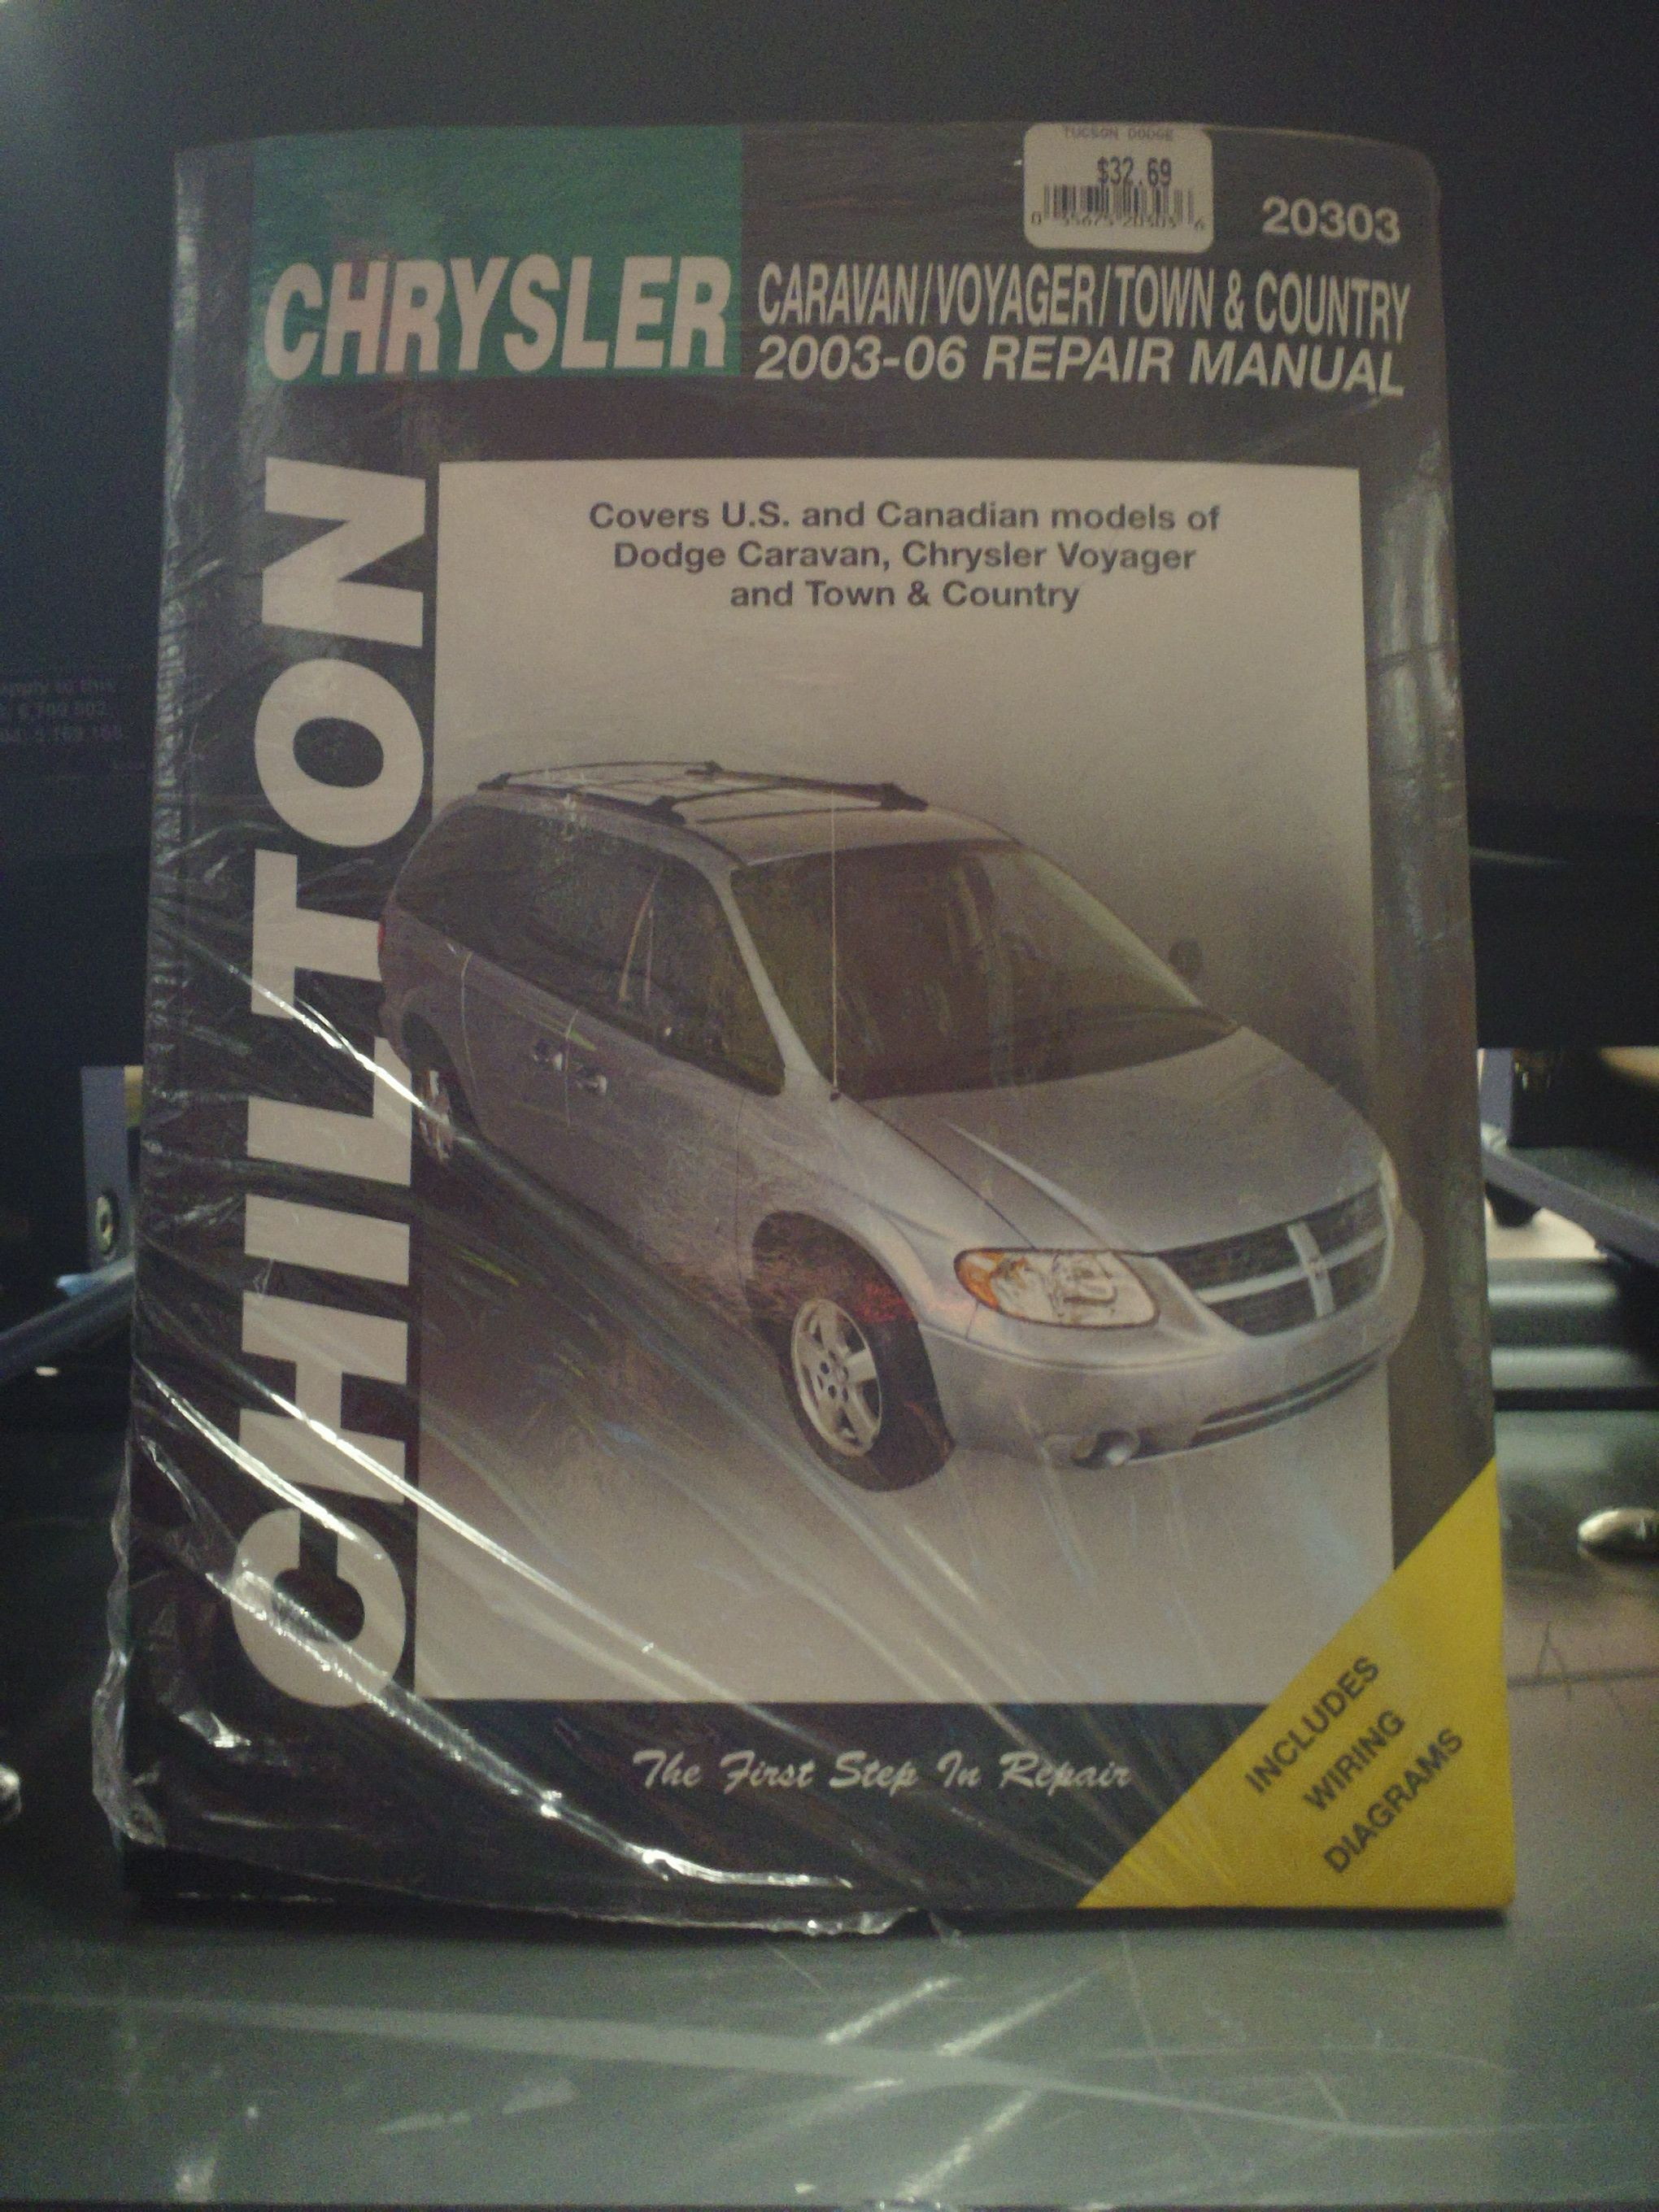 Chilton Manual For 2003-2006 Caravan, Voyager, Town & Country... Come on in  to Tucson Dodge at 4220 E 22nd St. SW Corner of 22nd & Columbus...or call  ...